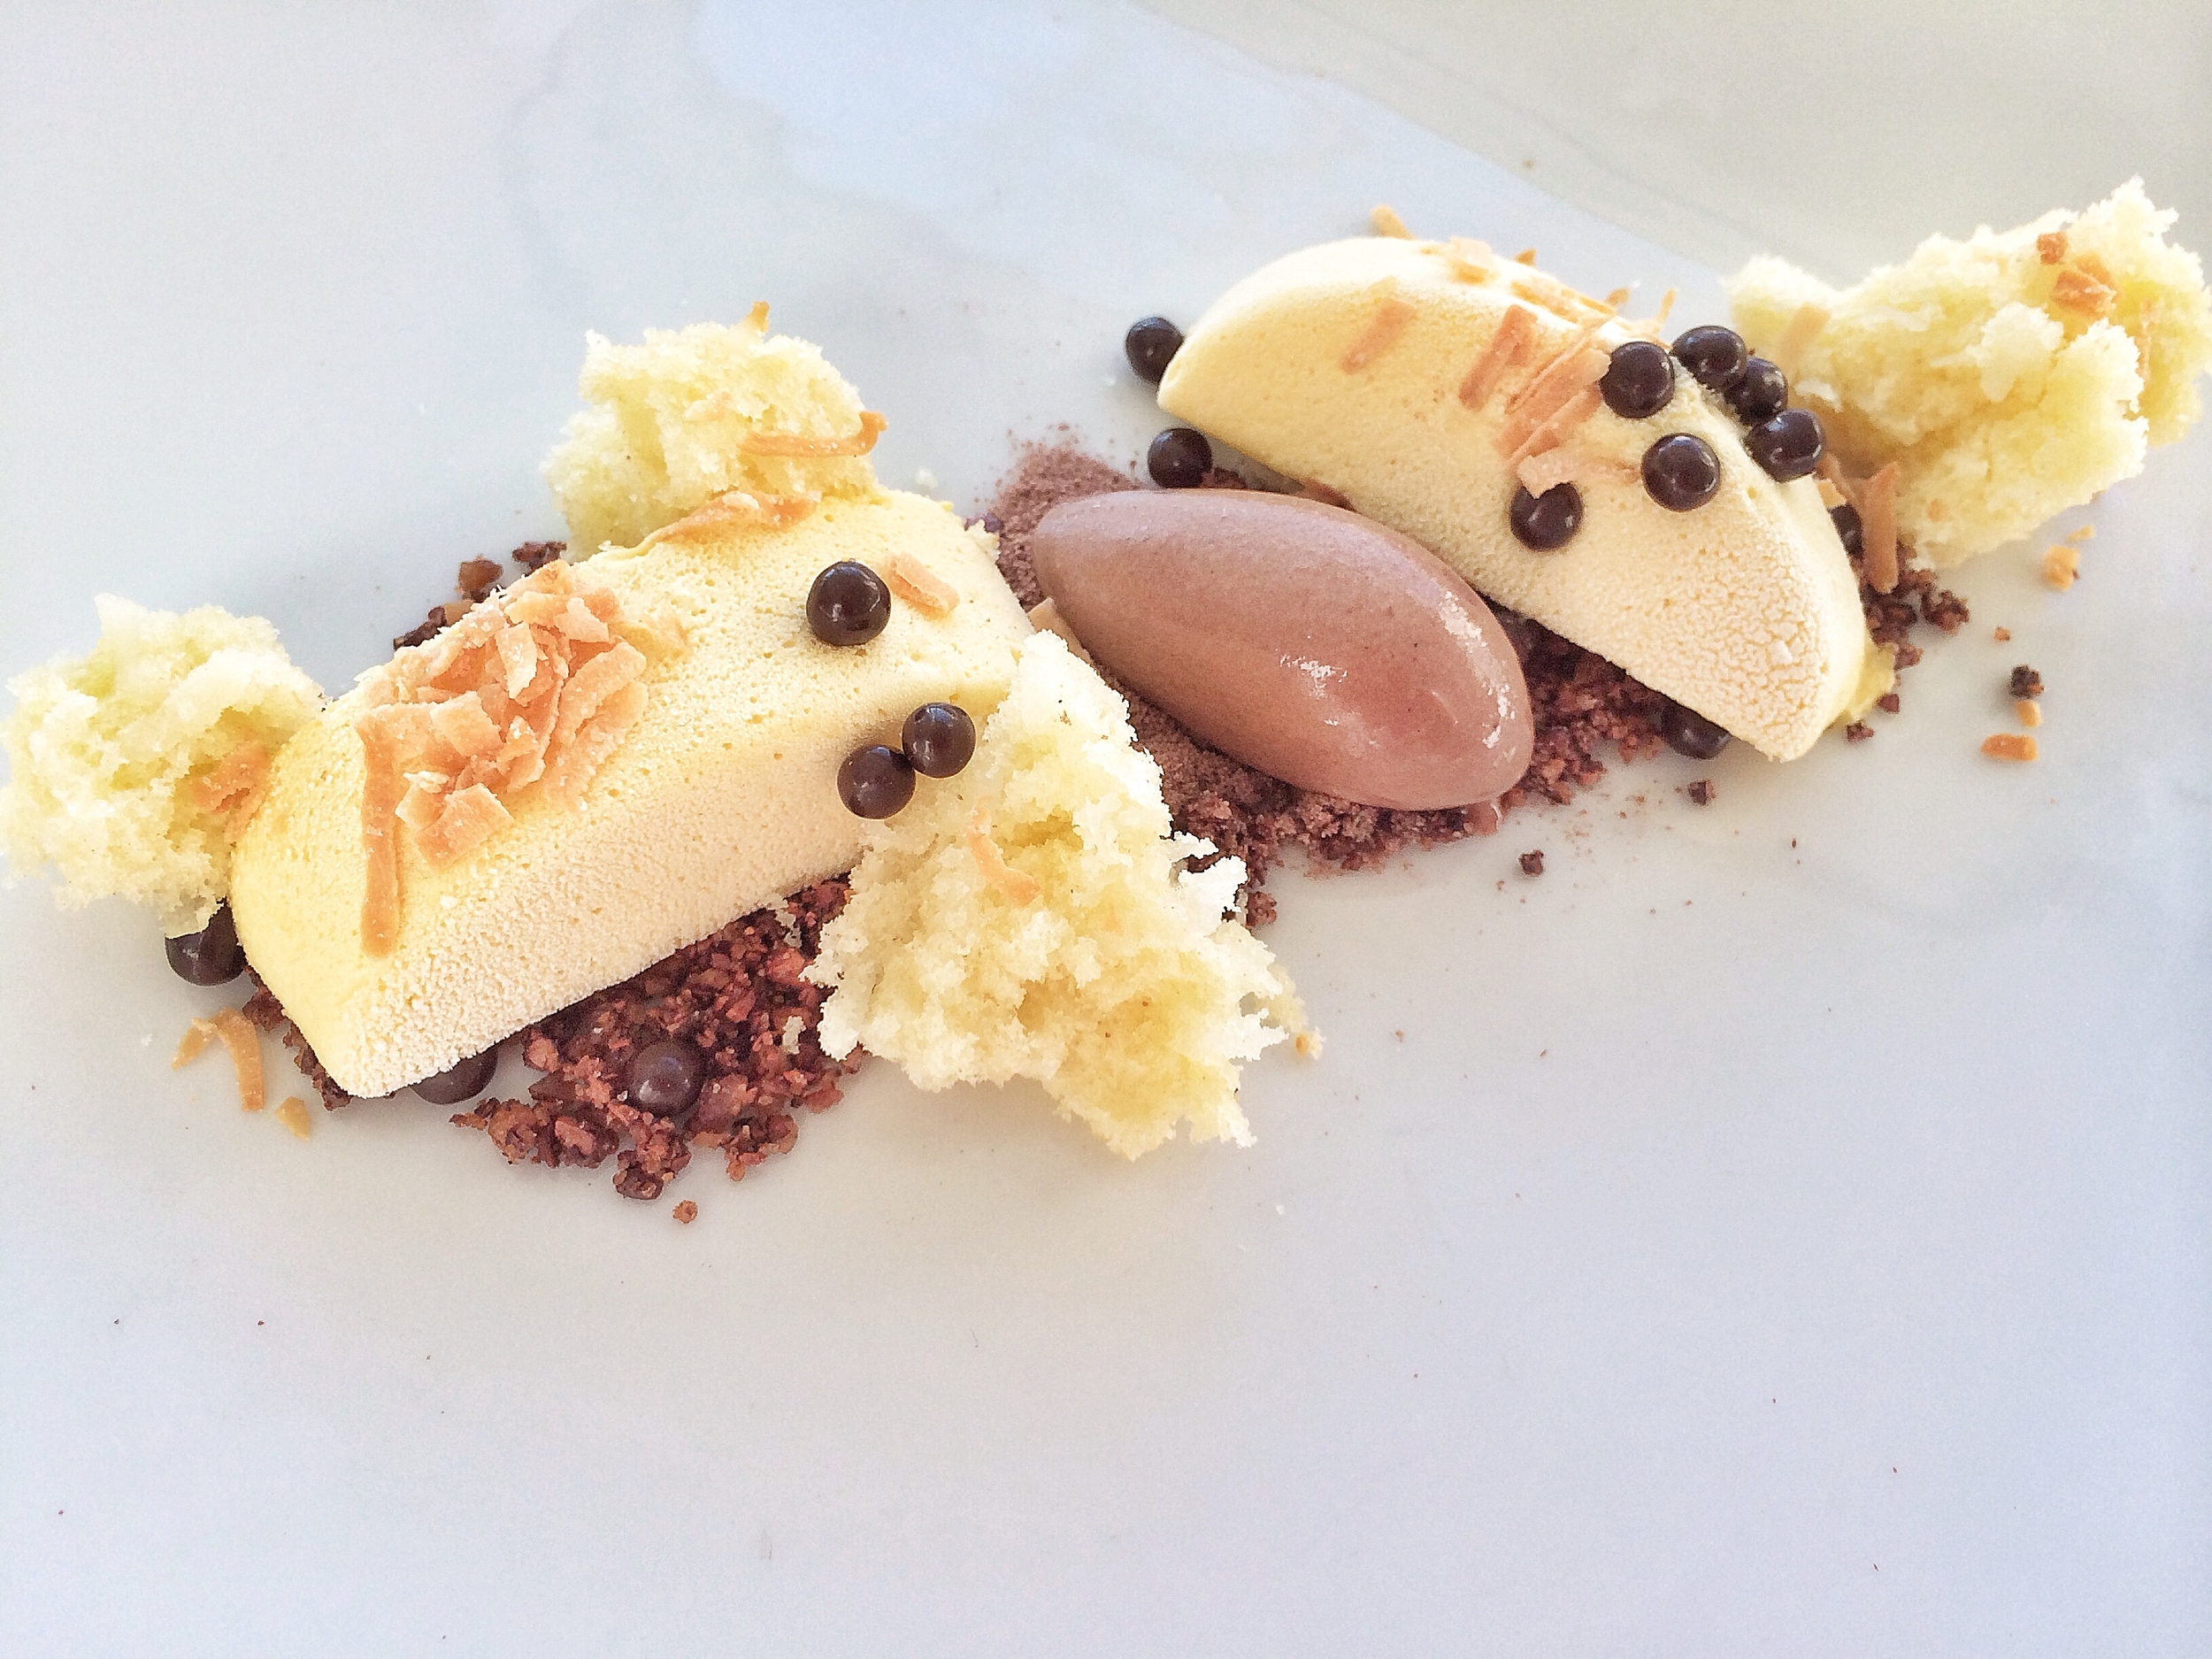 Tasty! Passion fruit semifreddo, cocoa nib crumble, chocolate pearls, coconut cake, toasted coconut, and chocolate ice cream. It goes without saying that everything is Valrhona, my go to chocolate in the kitchen.